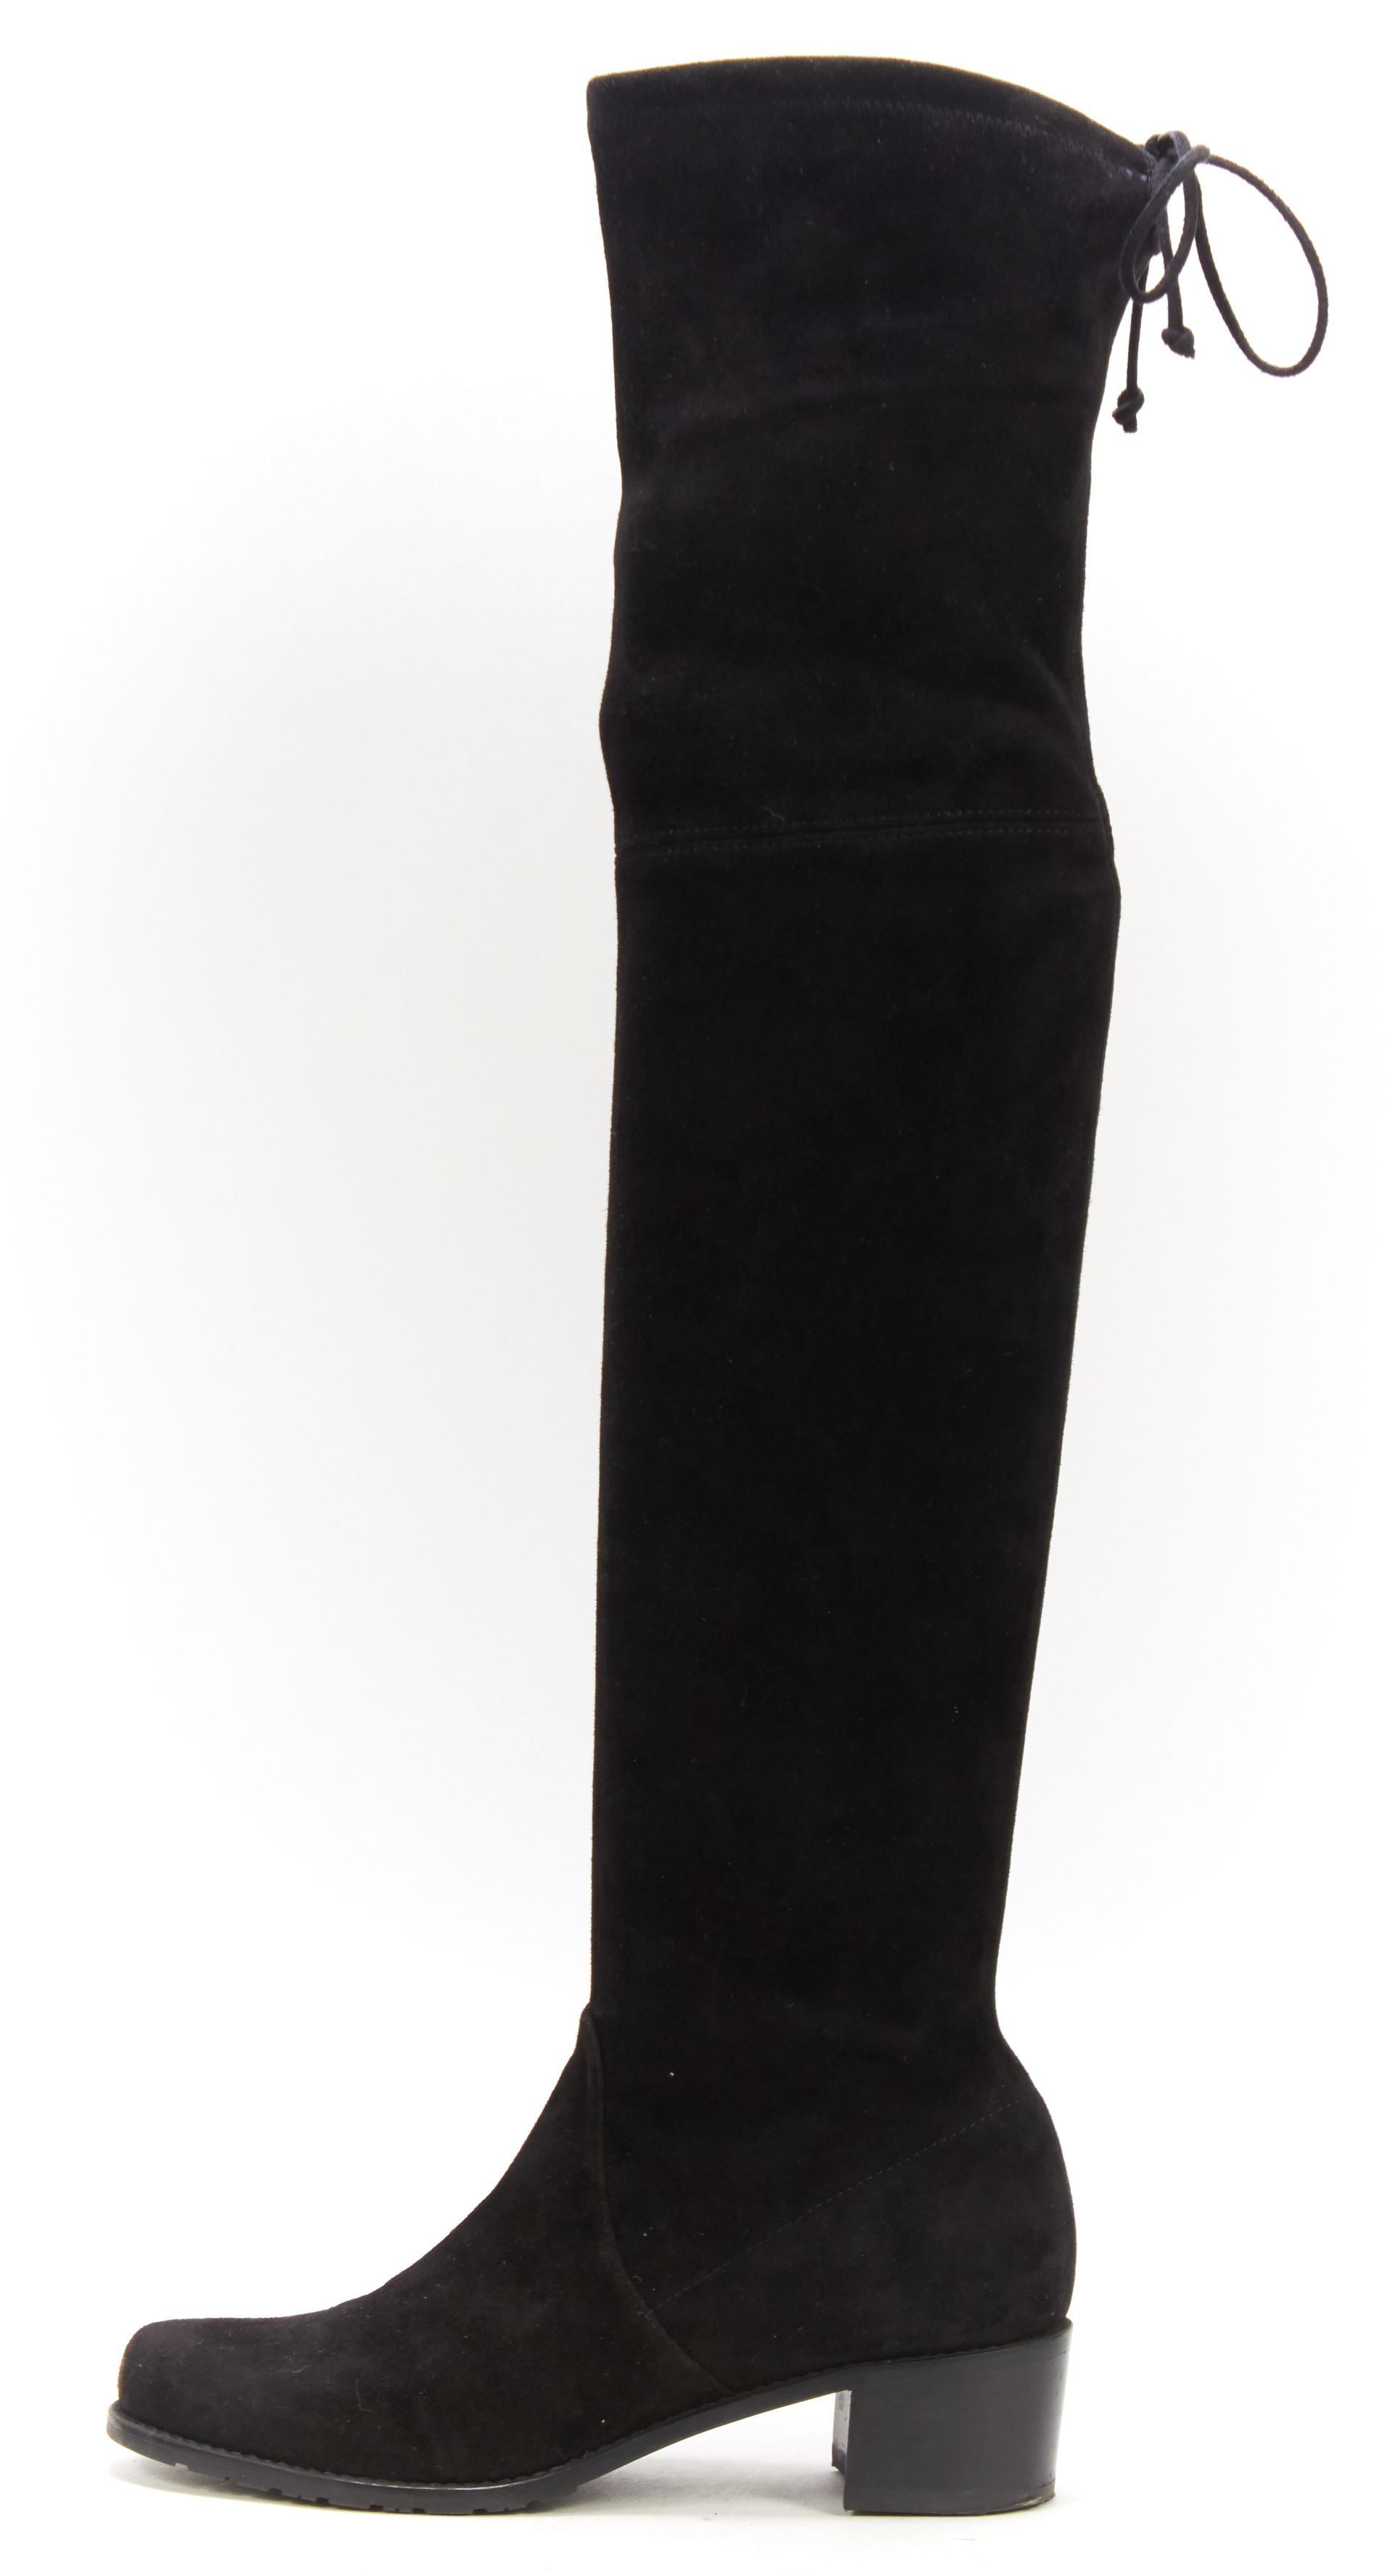 Stuart Weitzman Black Suede Leather Tall Over Knee Boots ...